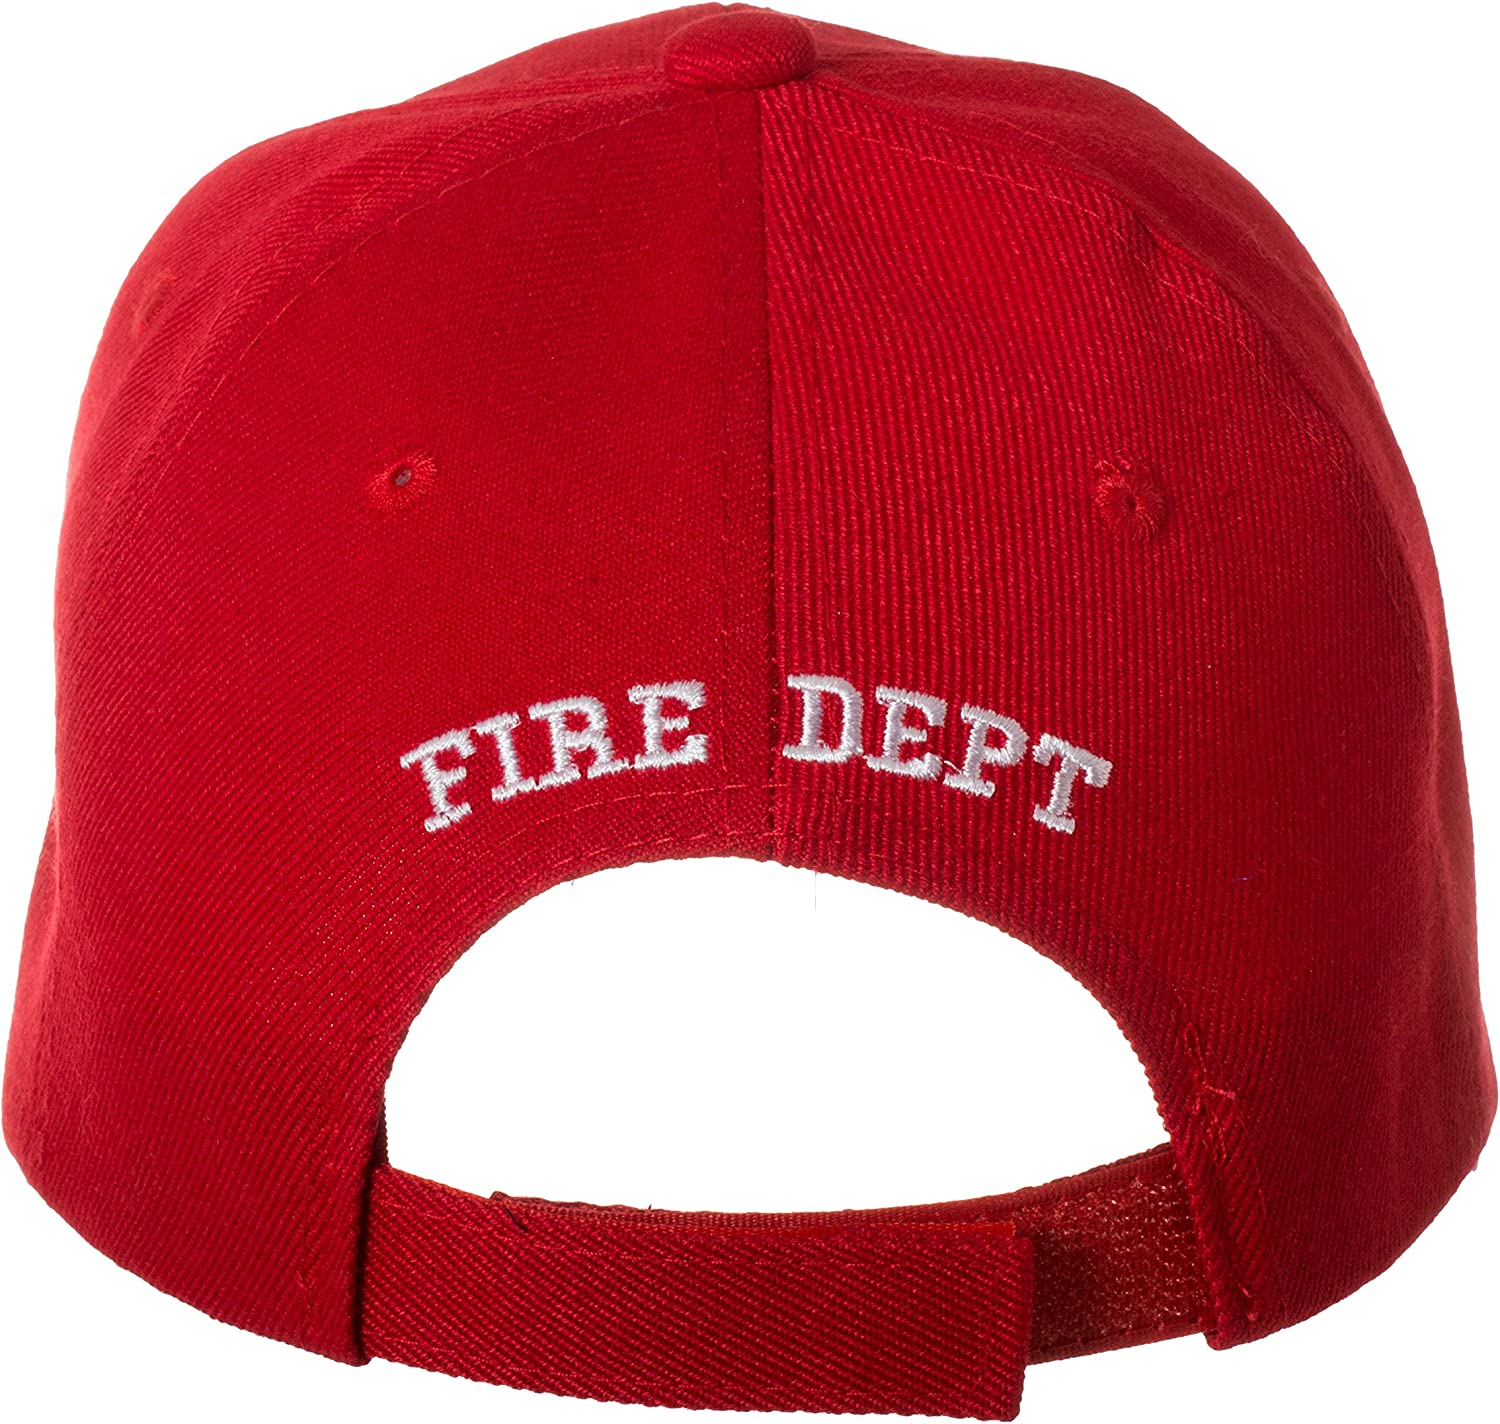 Firefighter Gift Artisan Owl Fire Department First in Last Out Cap 100/% Cotton Embroidered Hat